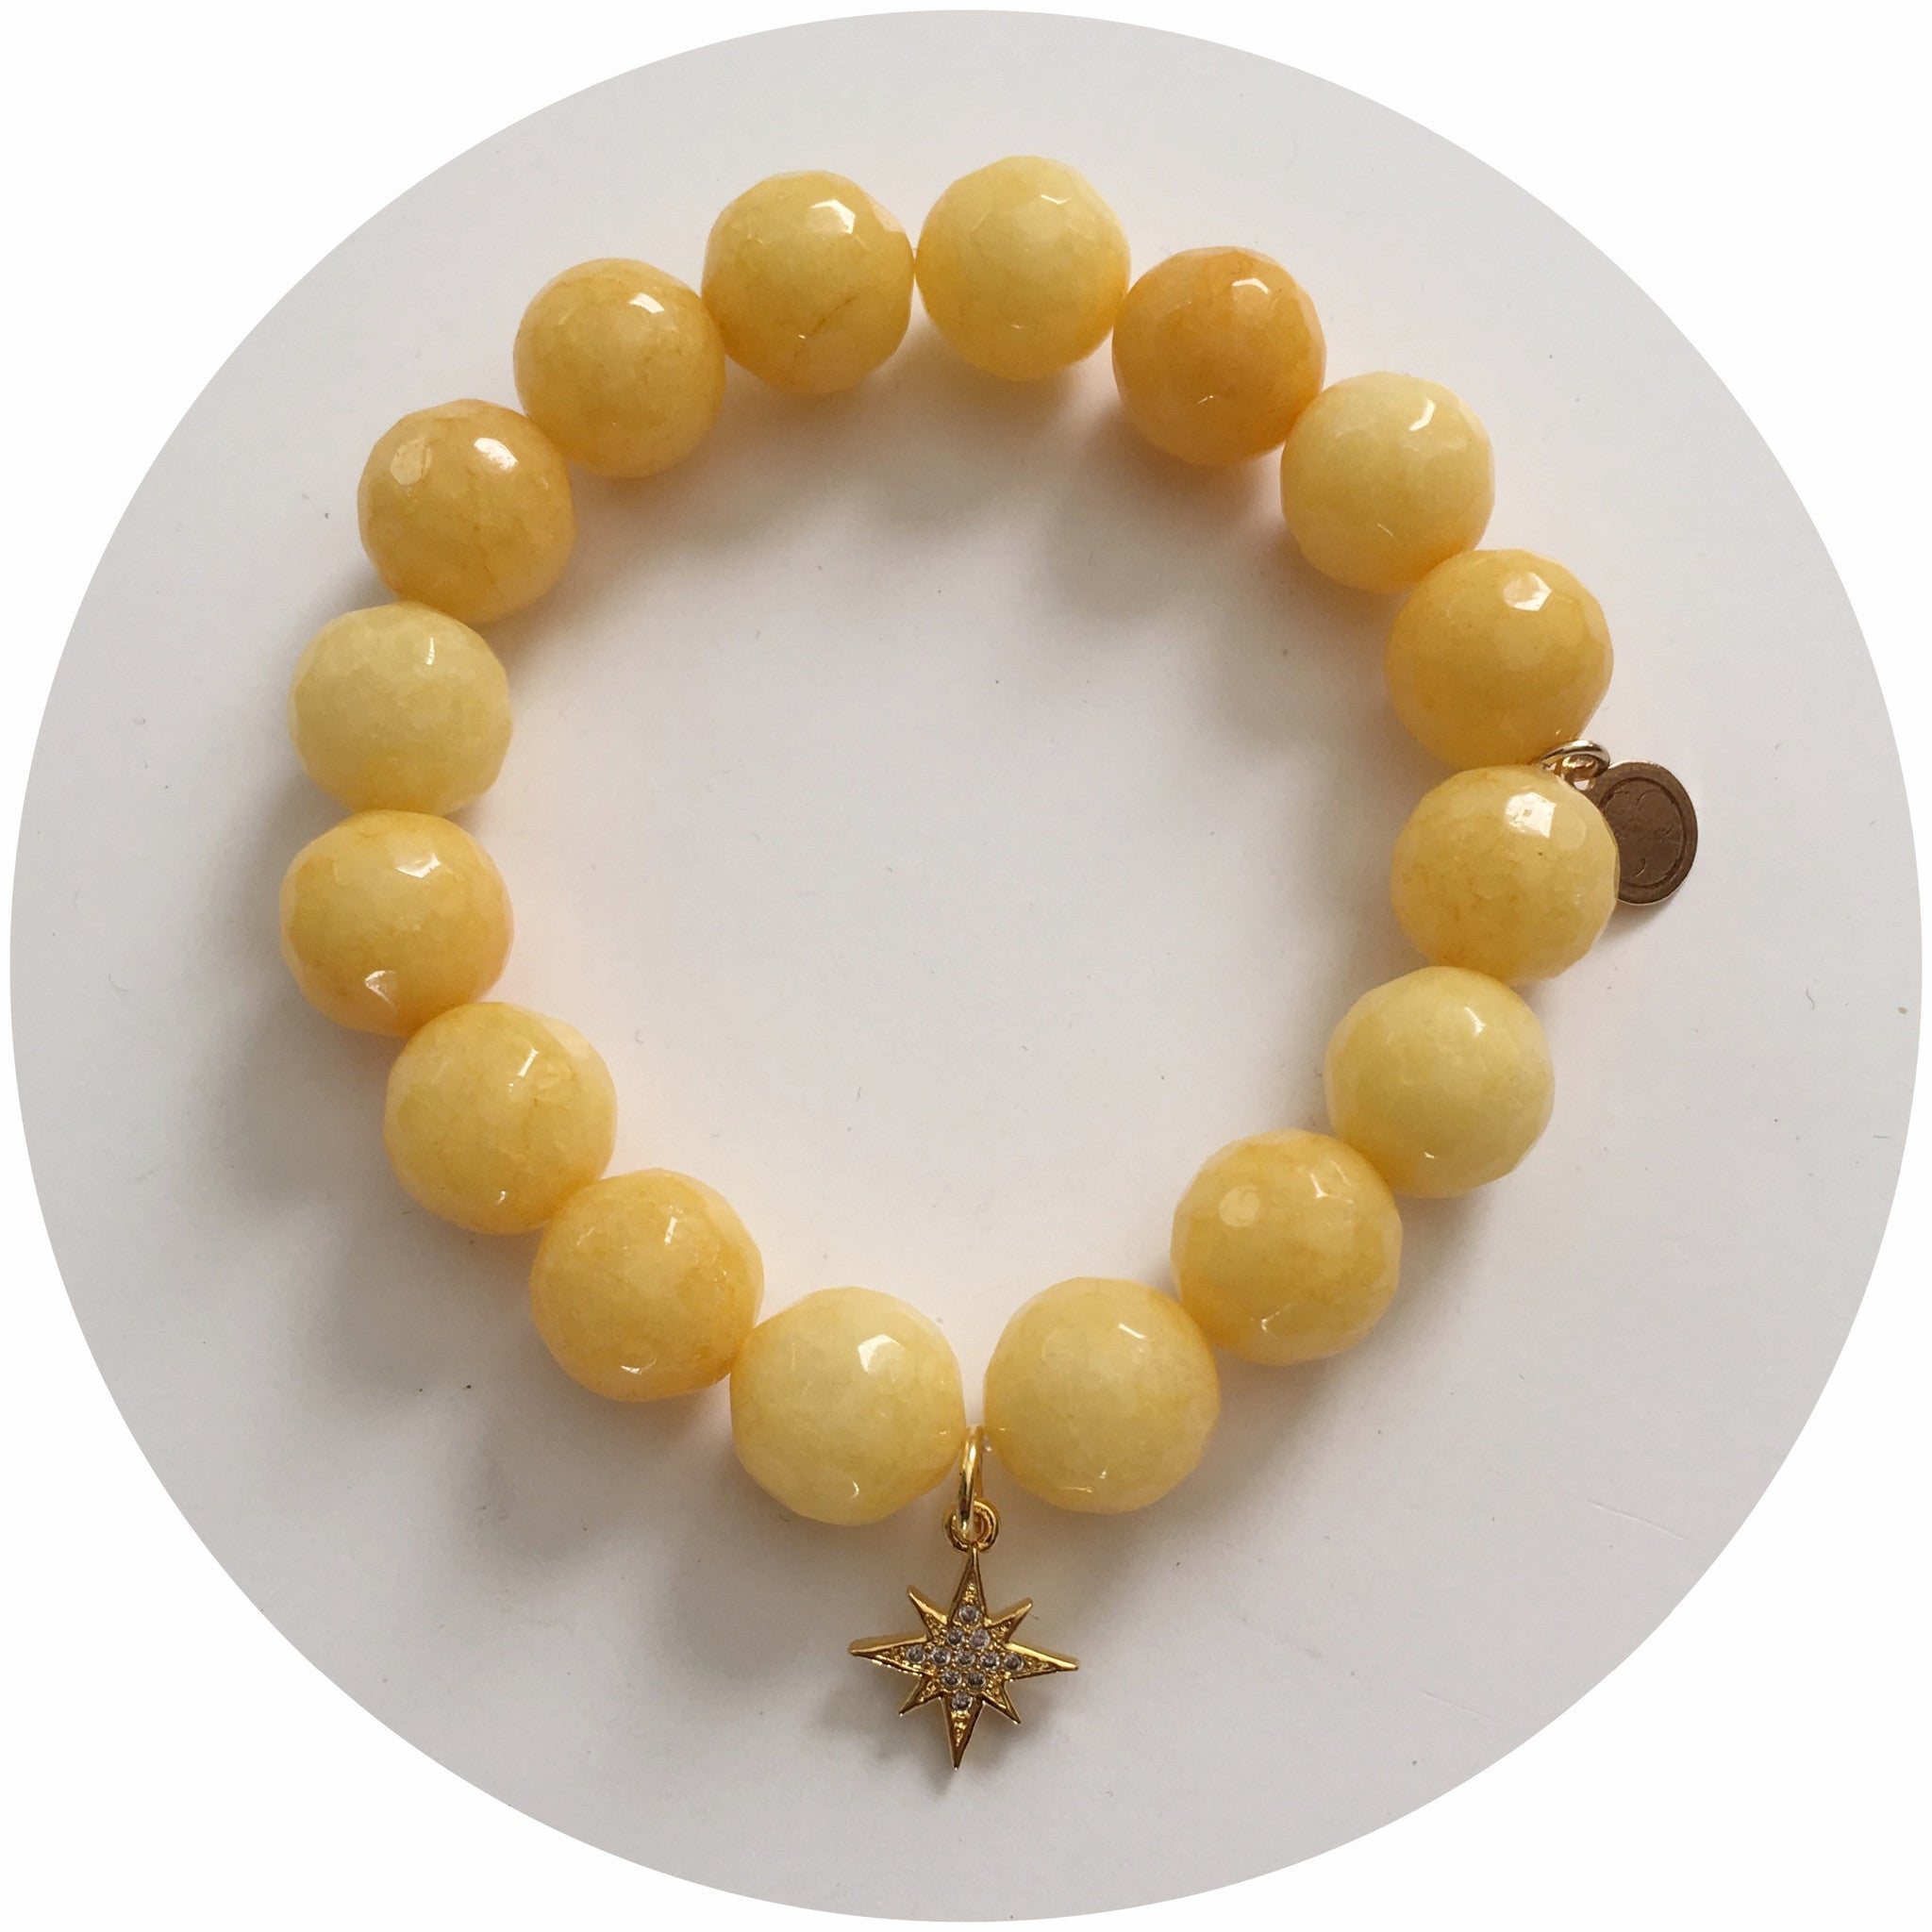 Champion Child Yellow Jade with Gold Pavé Starburst Pendant - Oriana Lamarca LLC